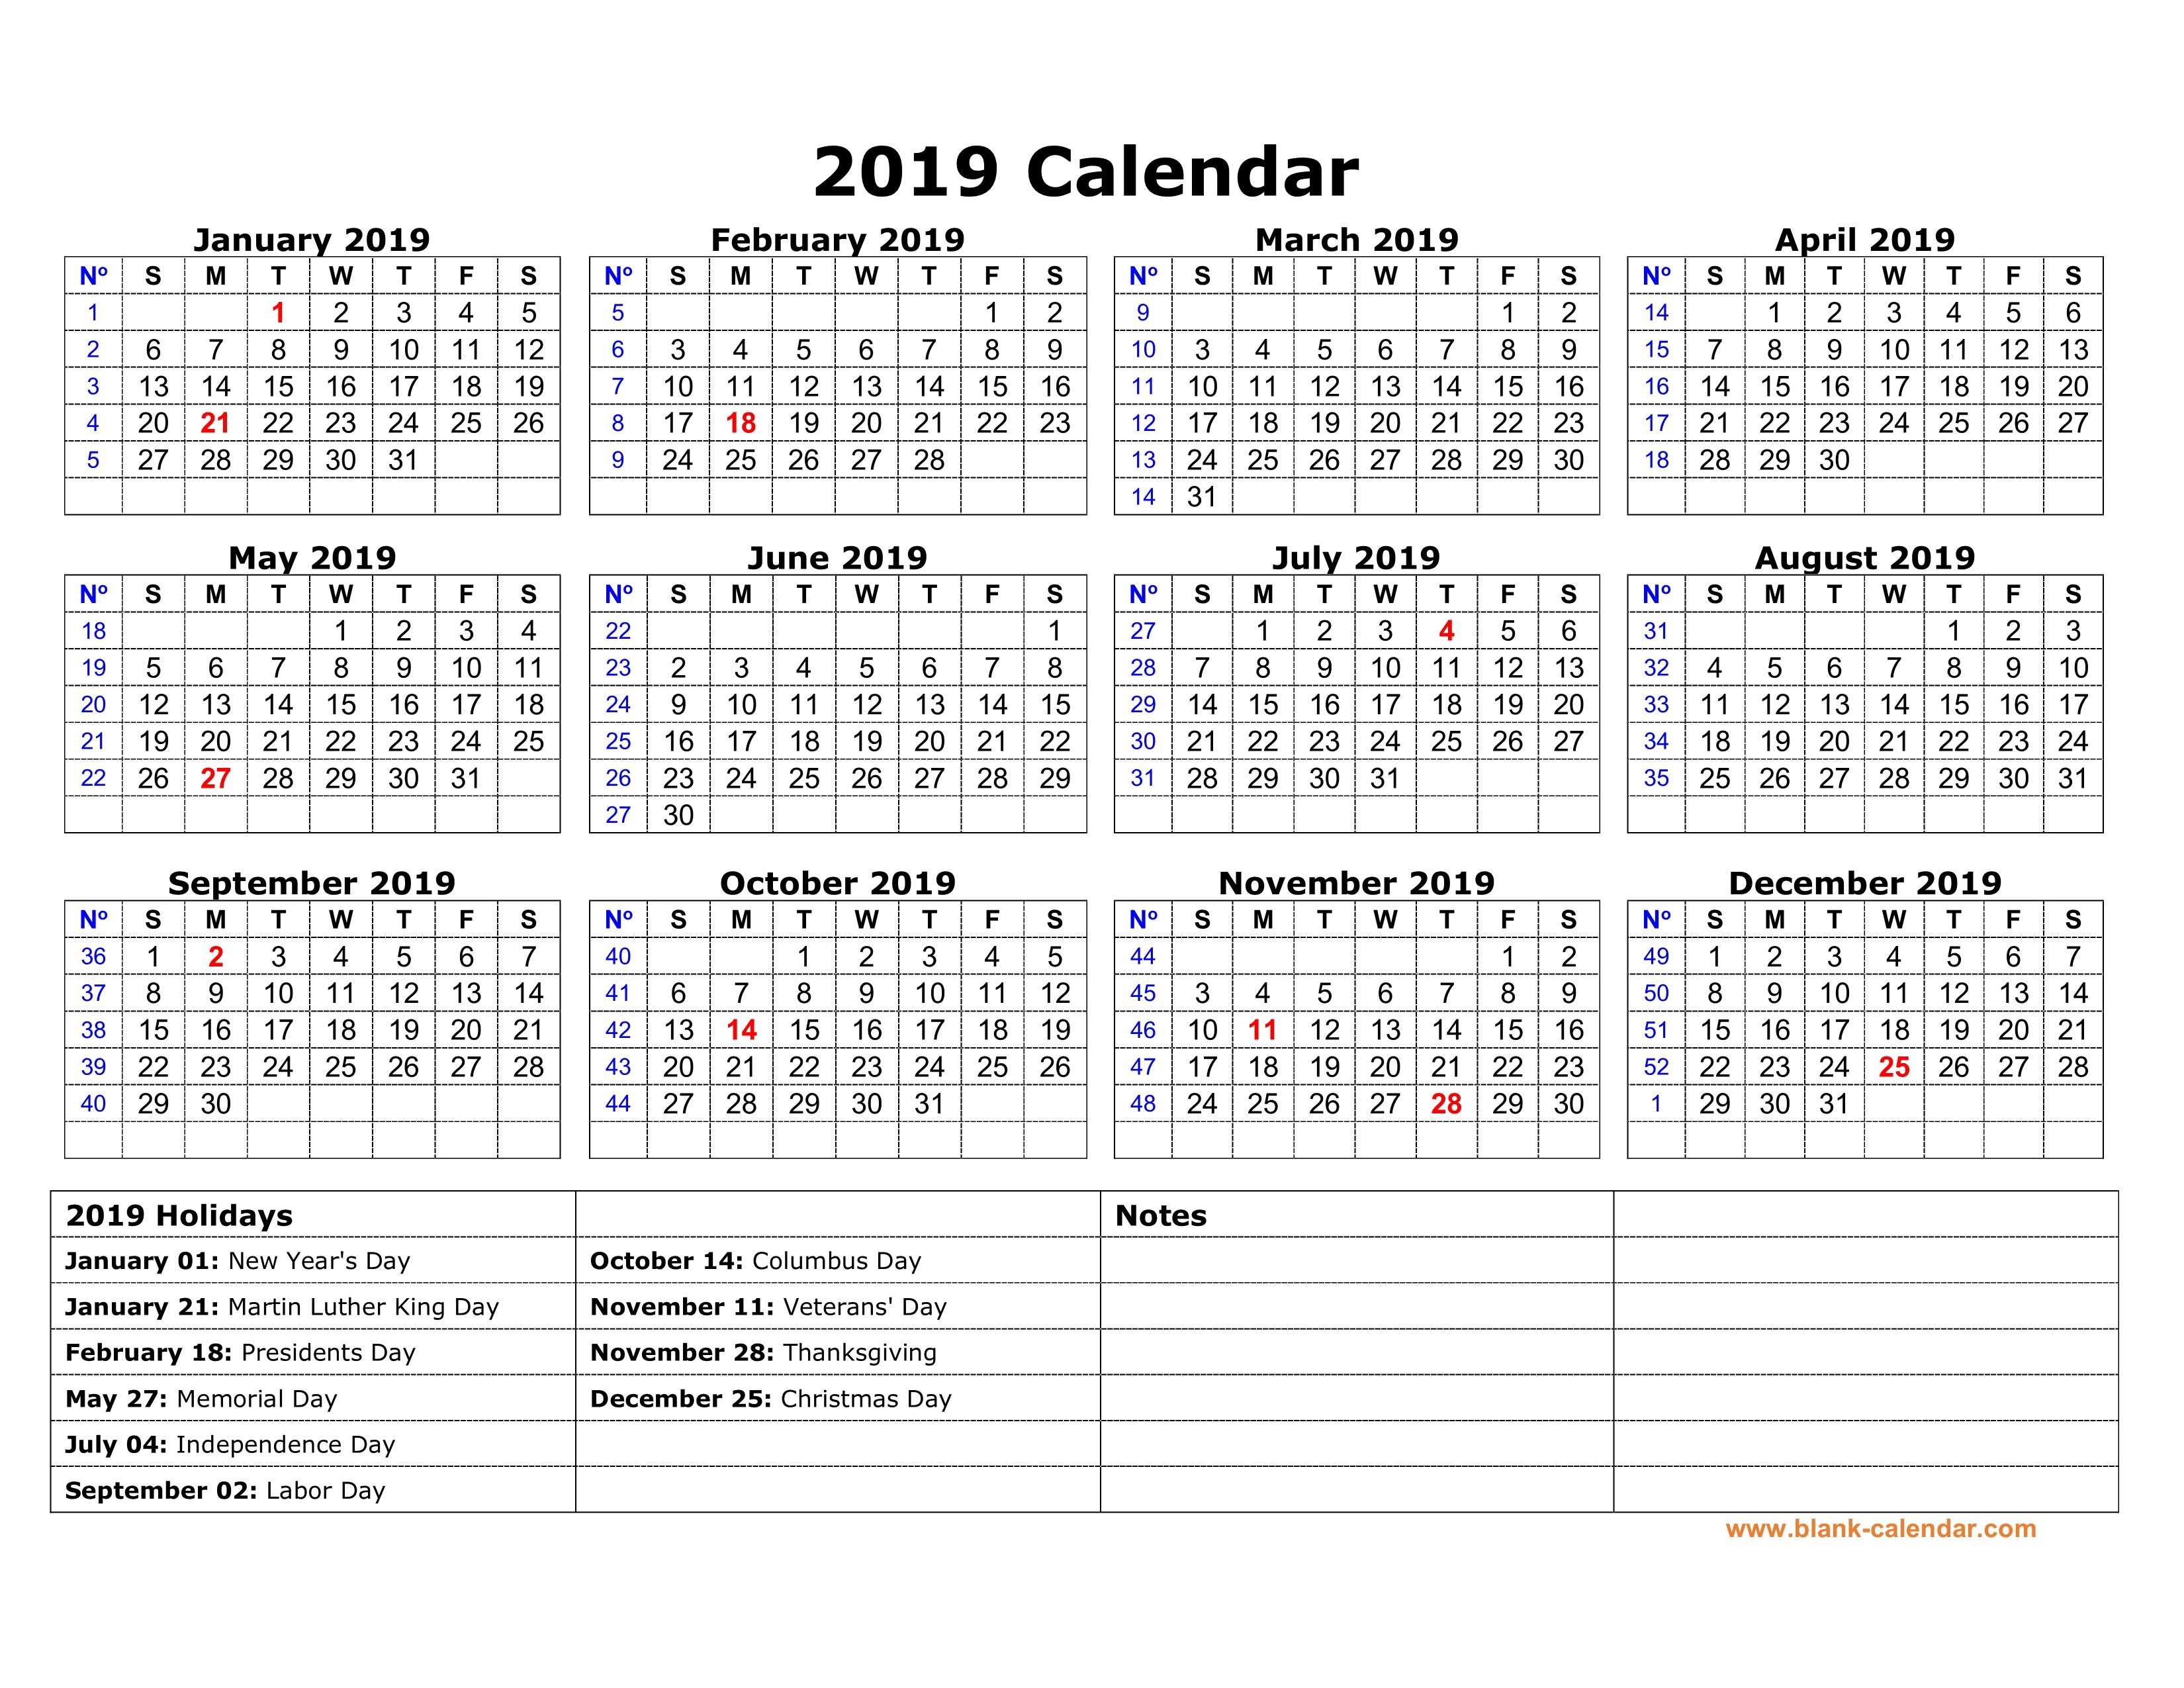 Free Download Printable Calendar 2019 With Us Federal Holidays, One Calendar 2019 Holidays